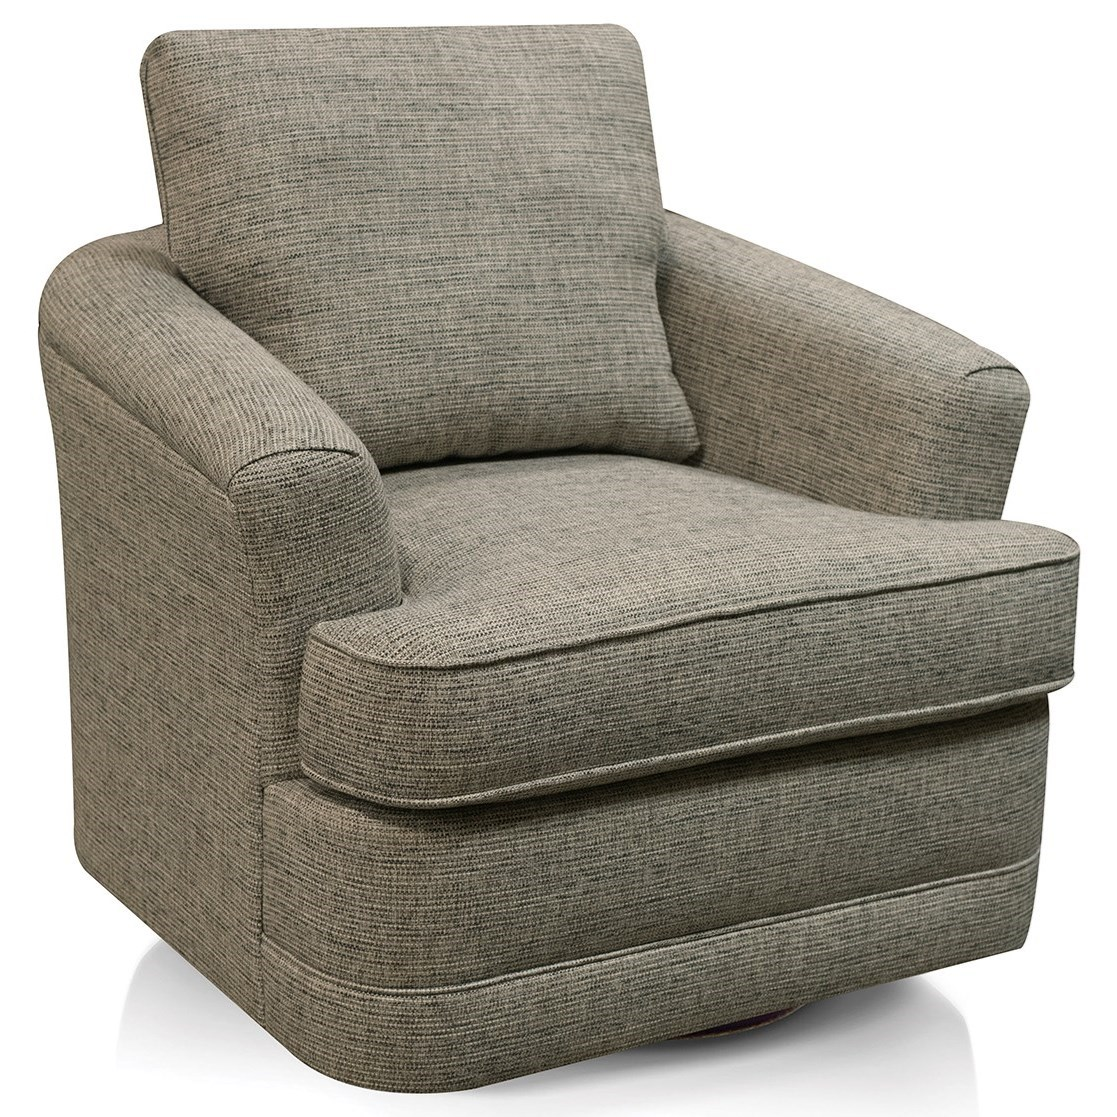 Amos Swivel Chair by England at EFO Furniture Outlet